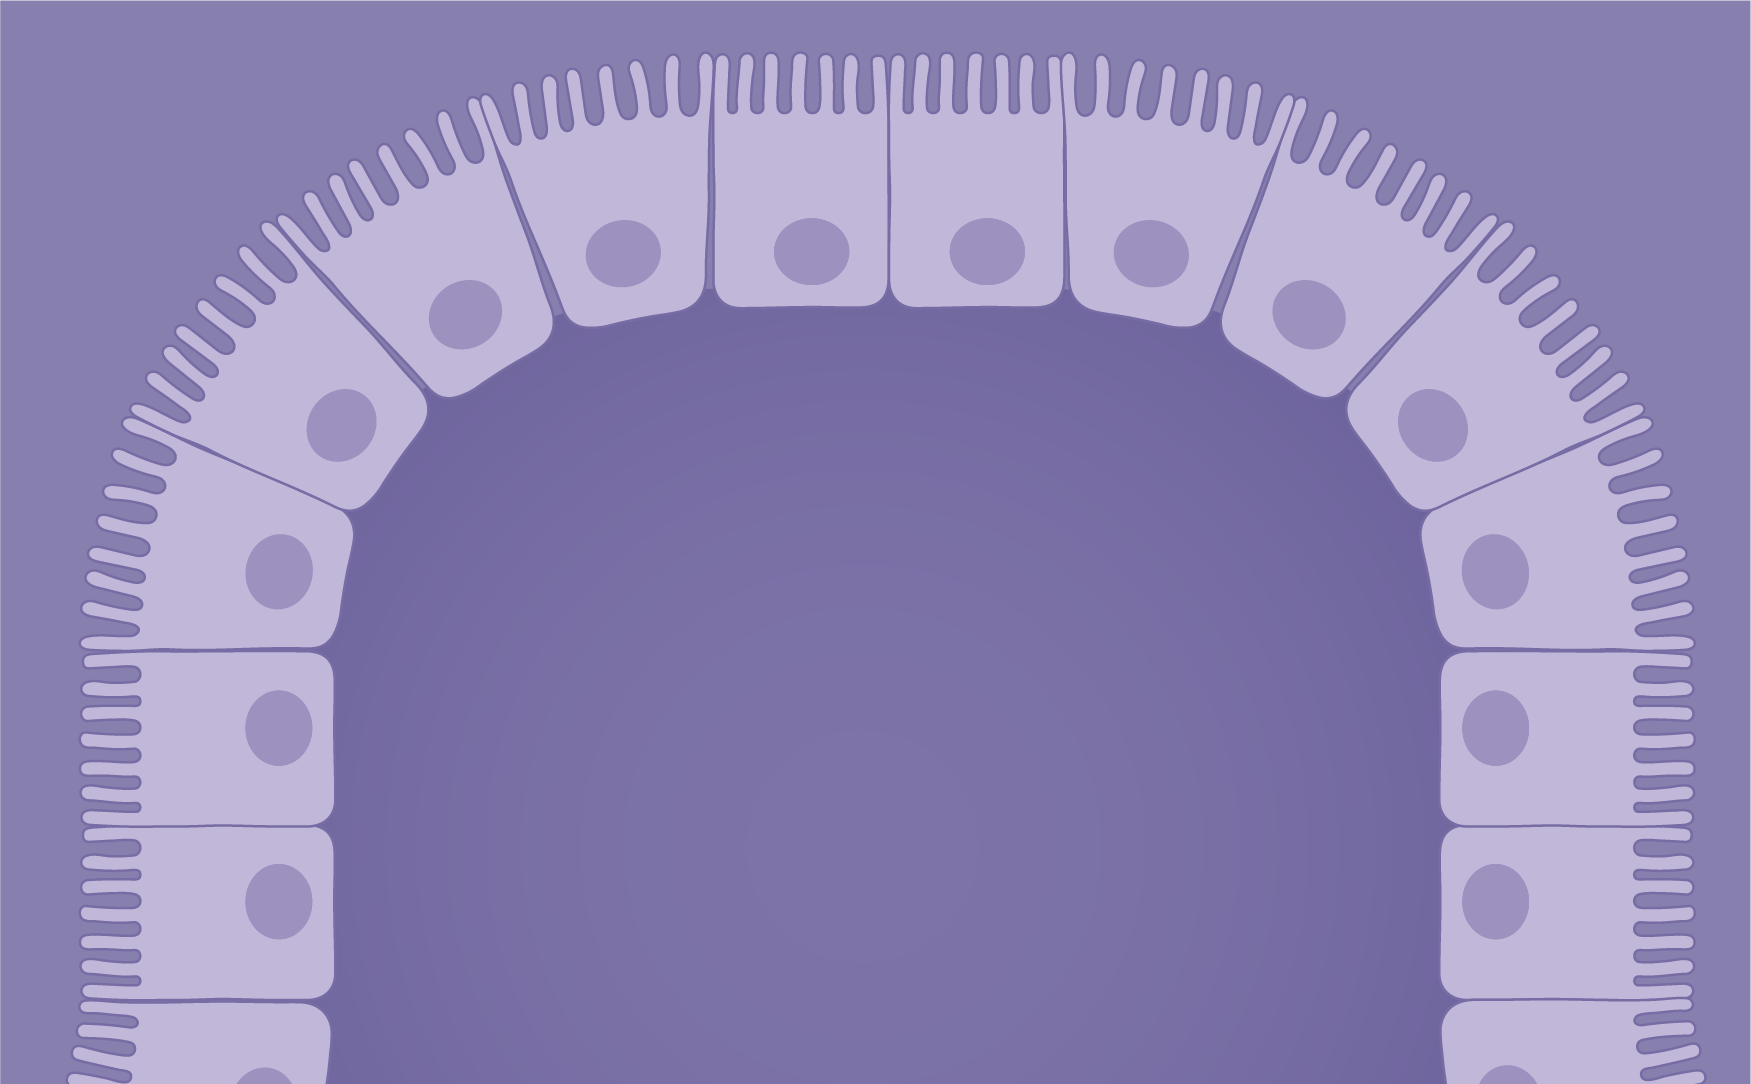 Epithelium icon category